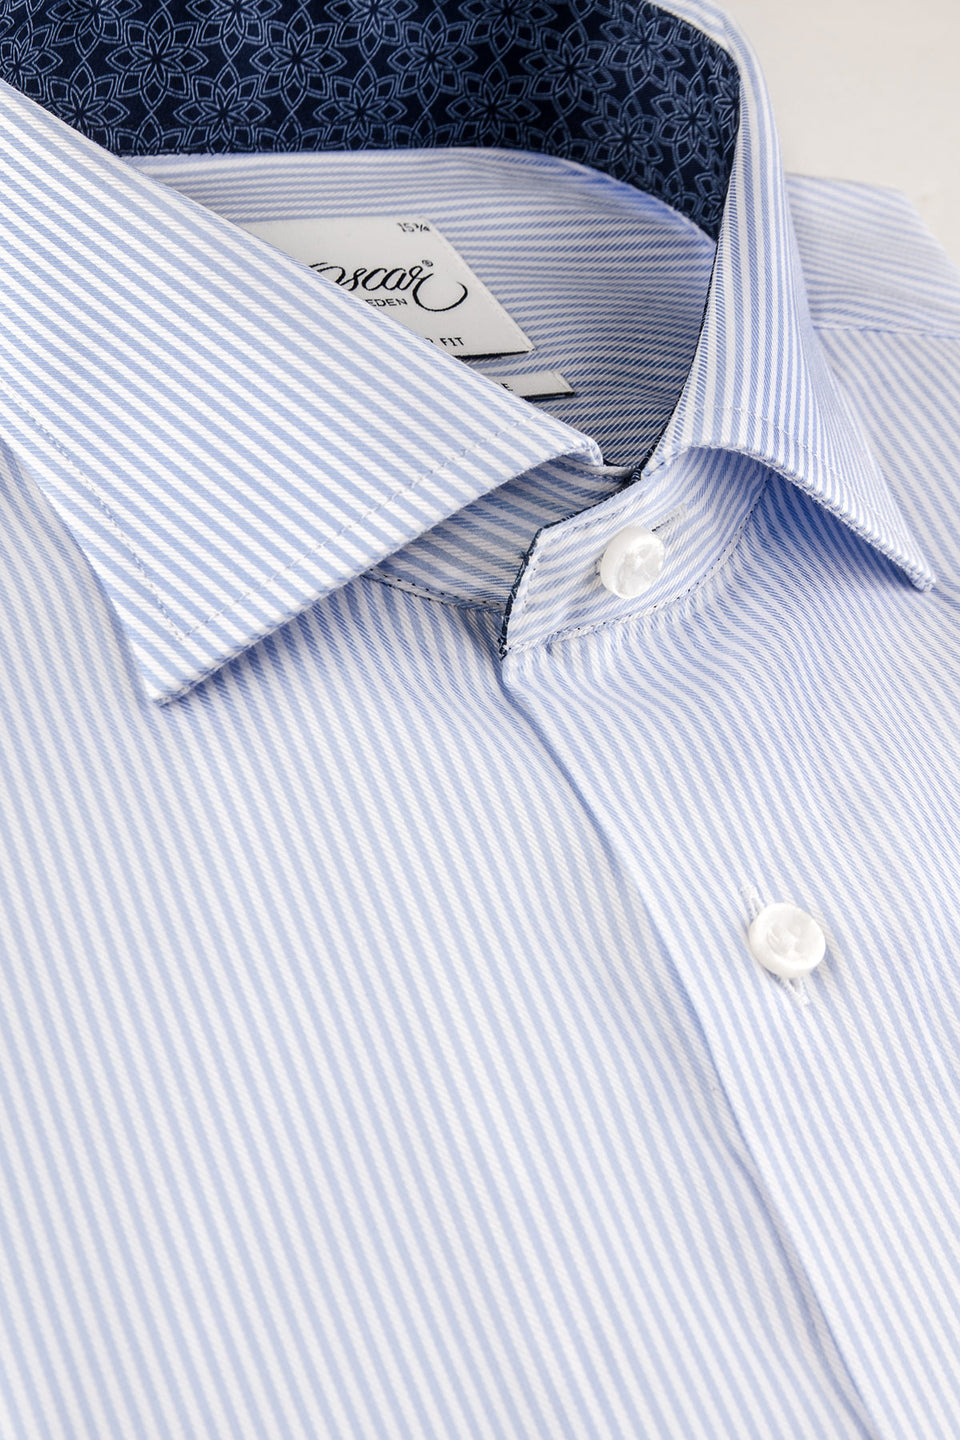 Lt blue striped regular fit shirt